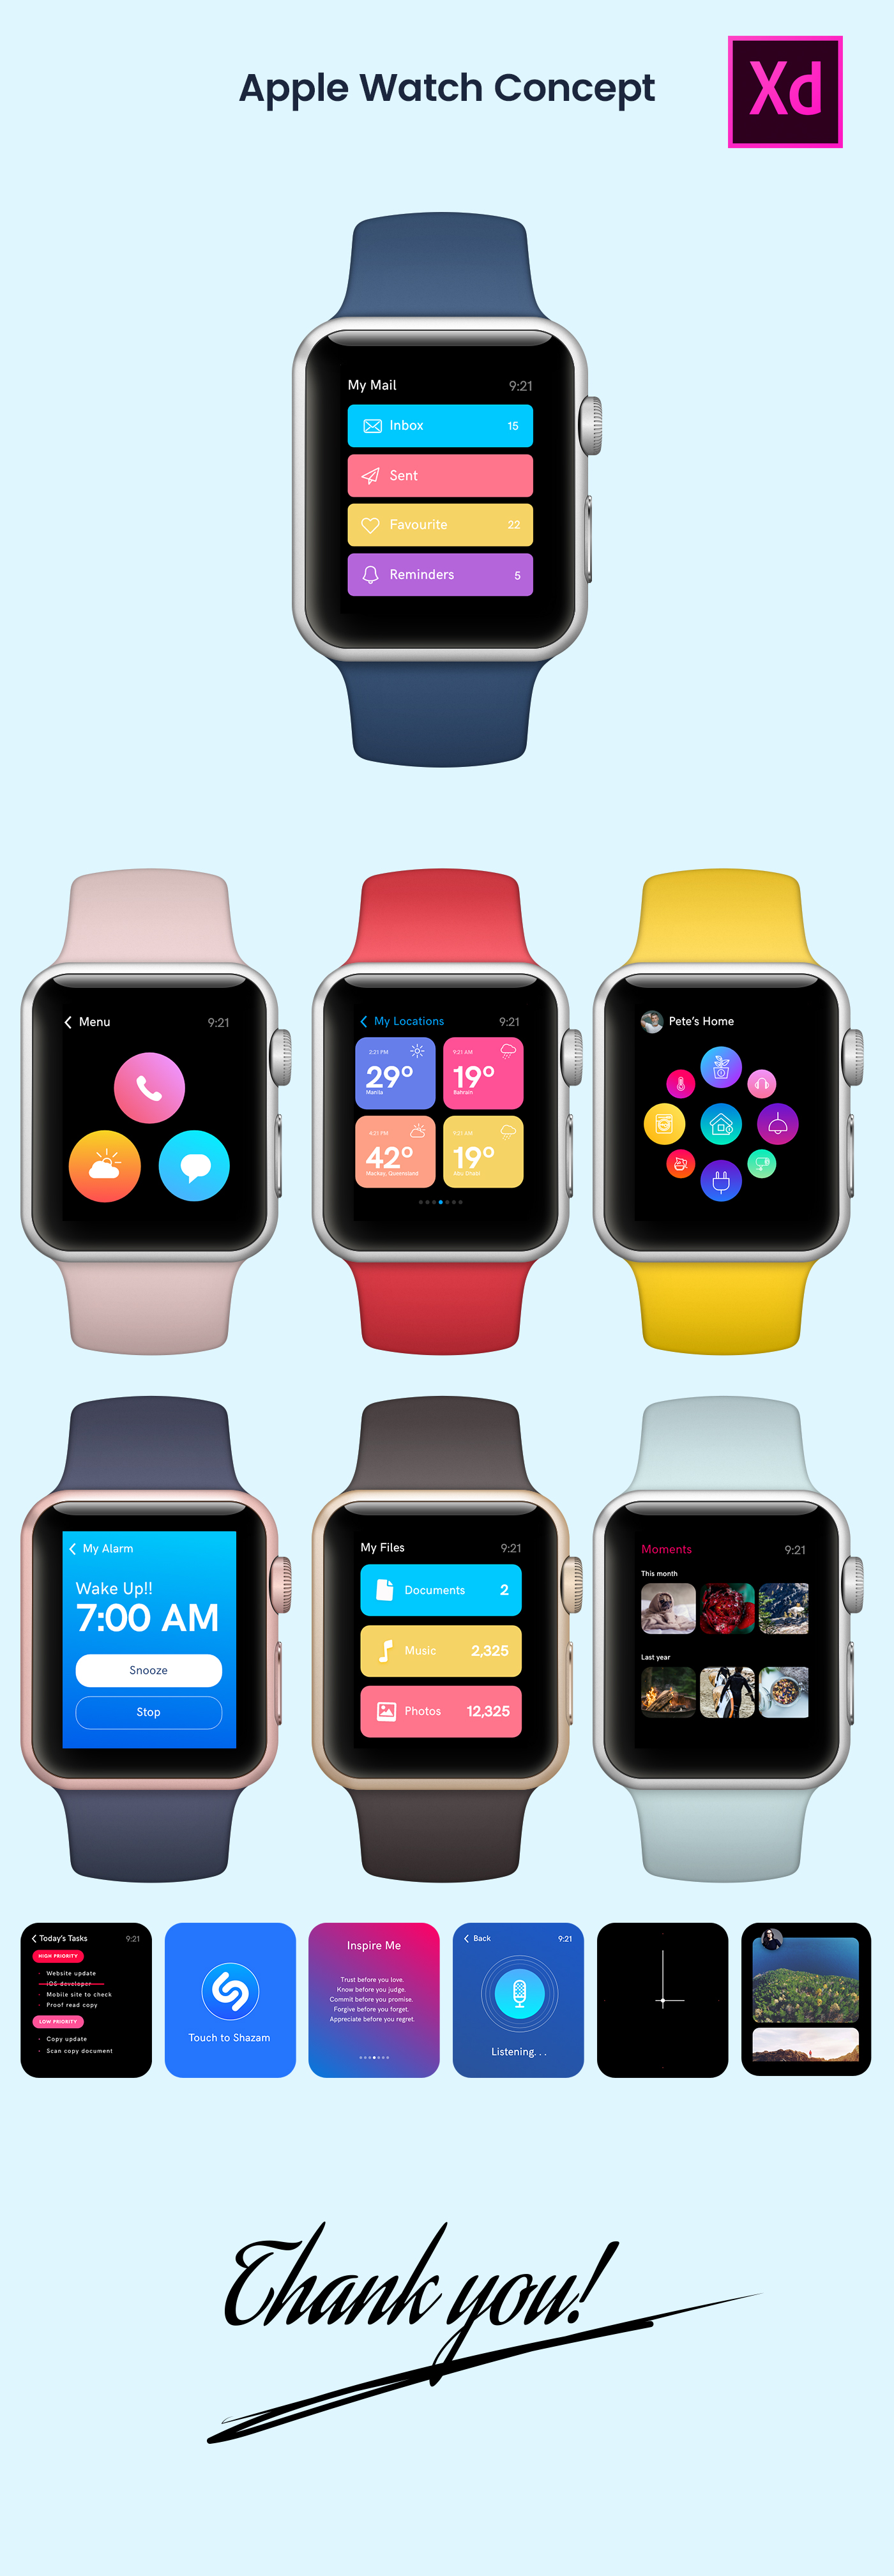 Apple Watch Design Concept Freebie for Adobe Xd - Free Download